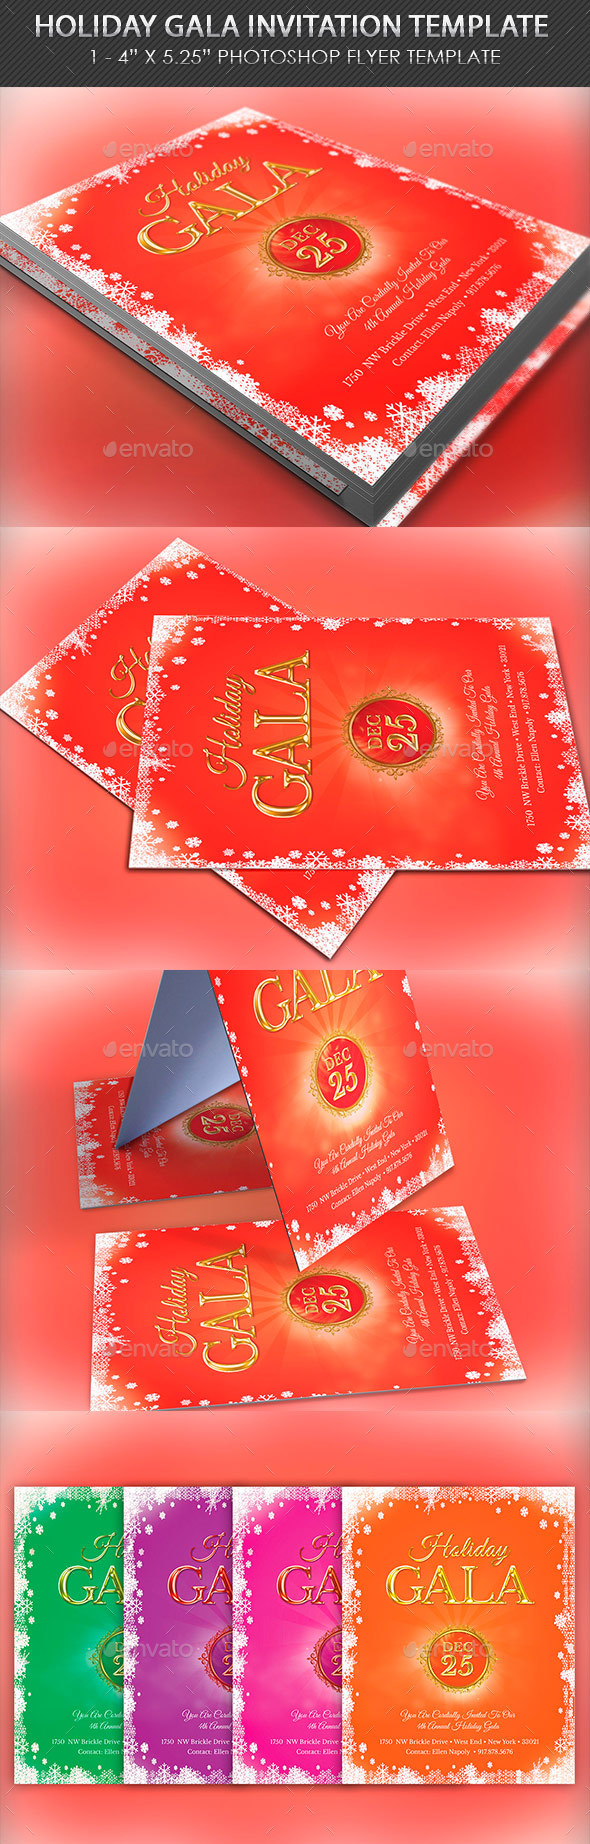 Holiday Gala Invitation Template by 4cgraphic2 – Gala Invitation Template